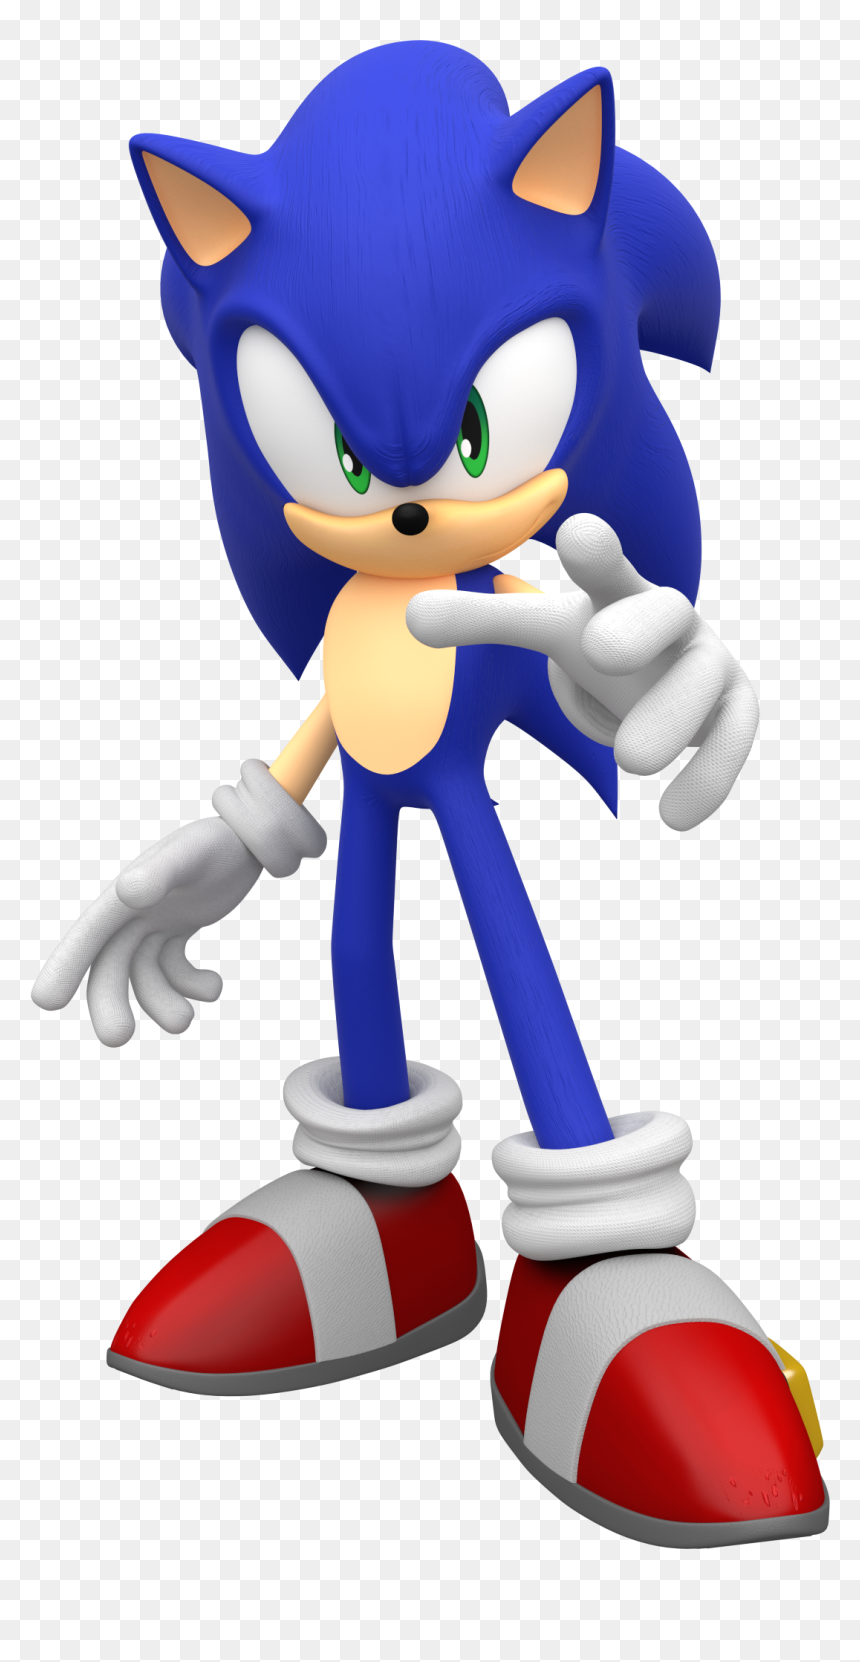 Sonic The Hedgehog 2006 Pose By Mintenndo Sonic The Hedgehog Png